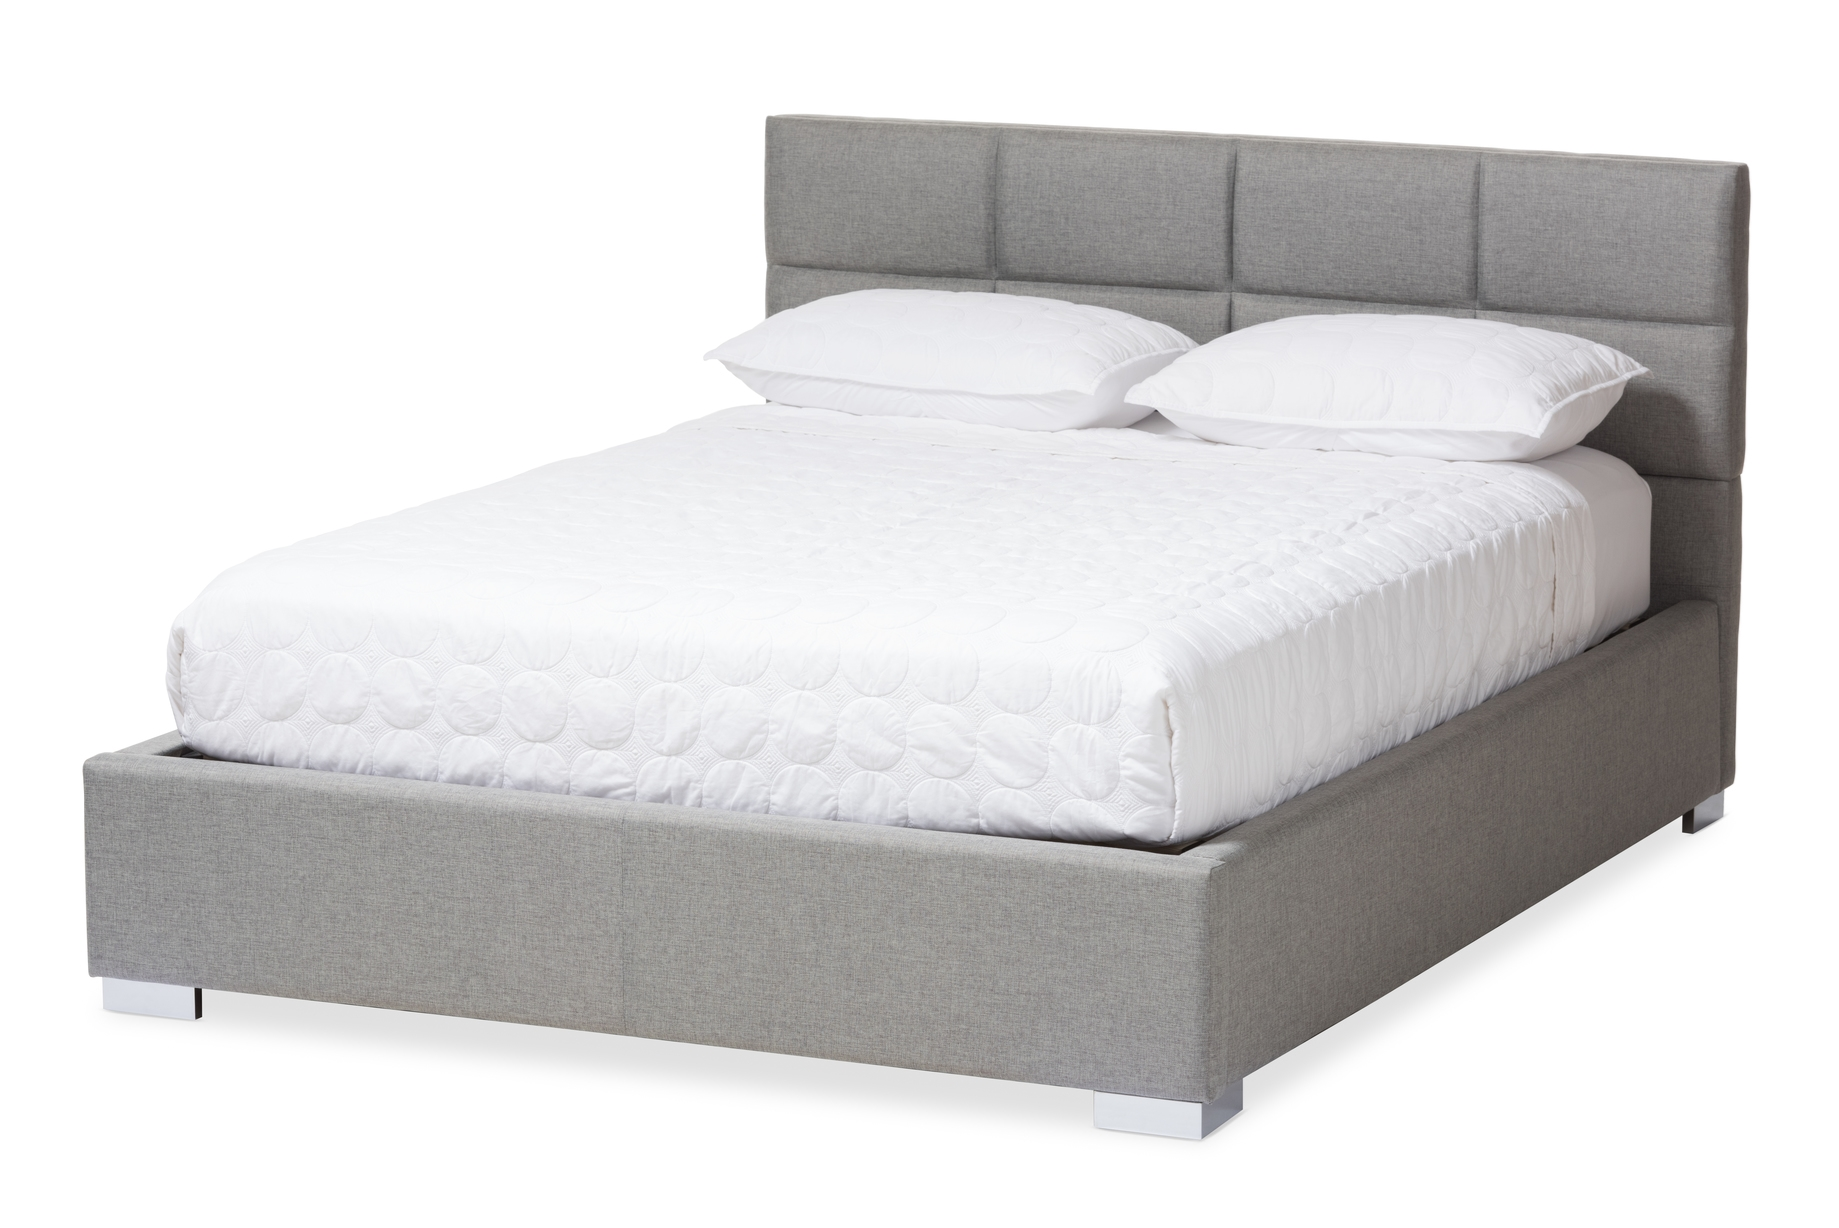 ideas images including bed size of and hera queen button gallery platform trends tufted also white leather collection upholstered with